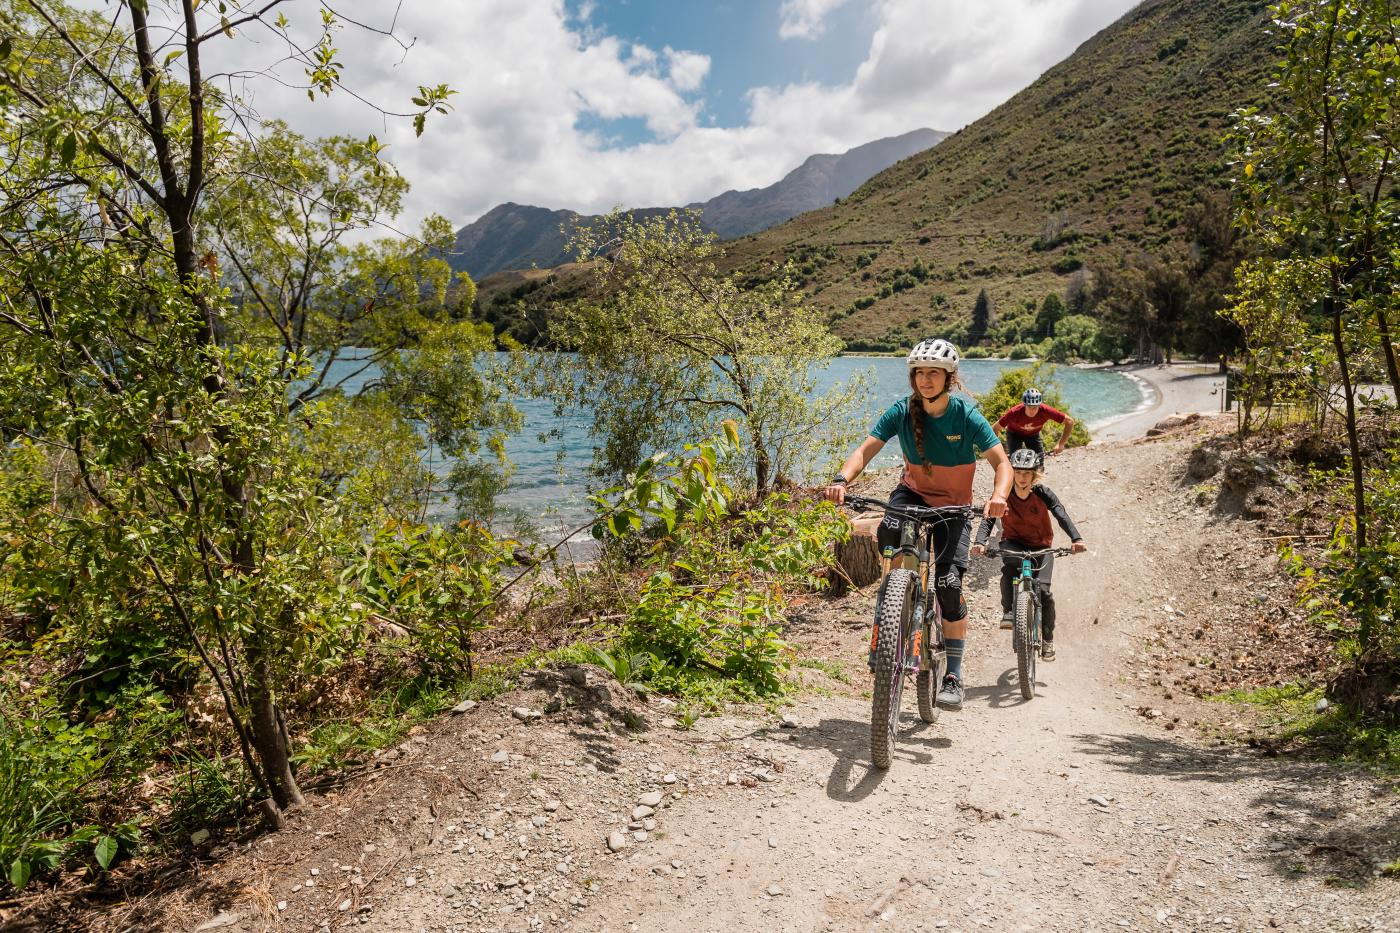 Mountain Biking at 7 Mile Scenic Reserve, Queenstown